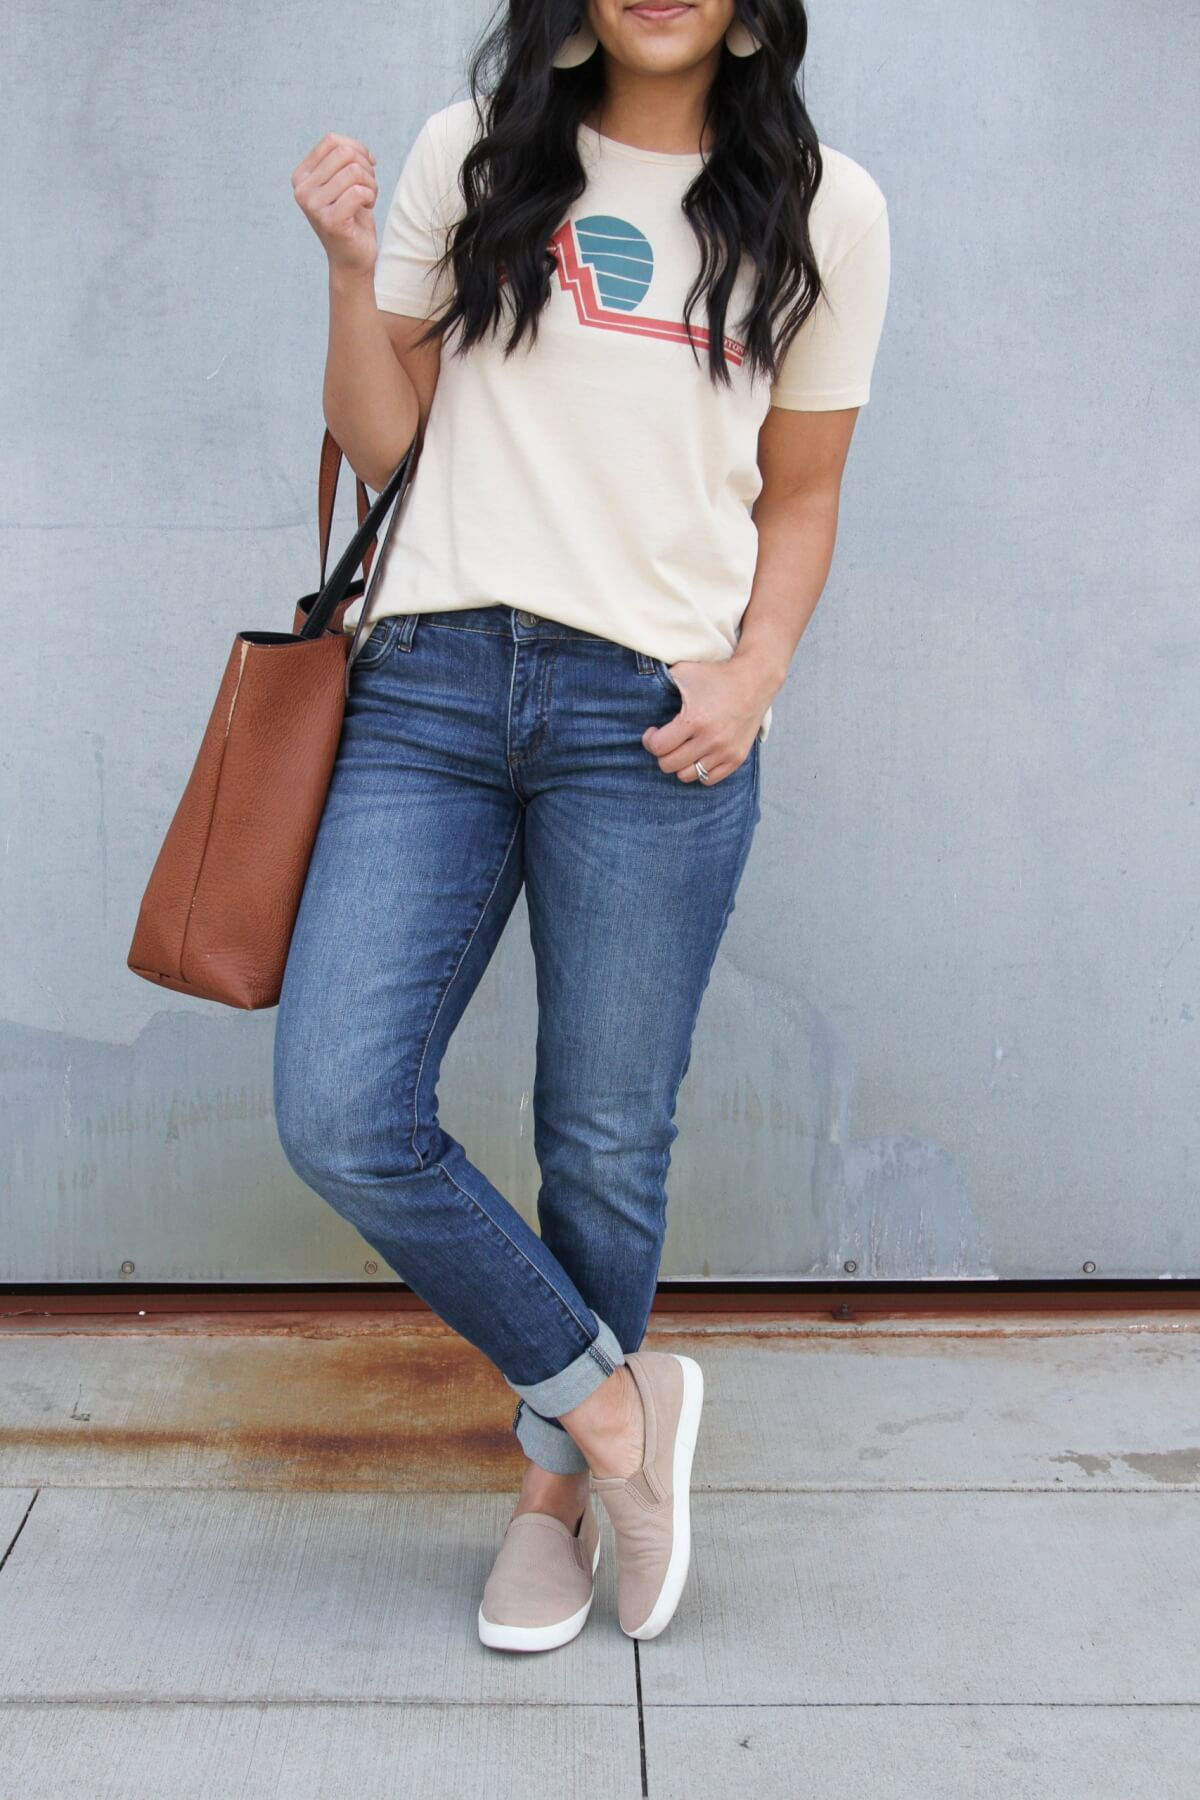 Easy to Wear Shoes for Spring: Oatmeal Naturalizer slip-on sneakers + graphic tee + KUT from the Kloth boyfriend jeans + white earrings + brown tote close up